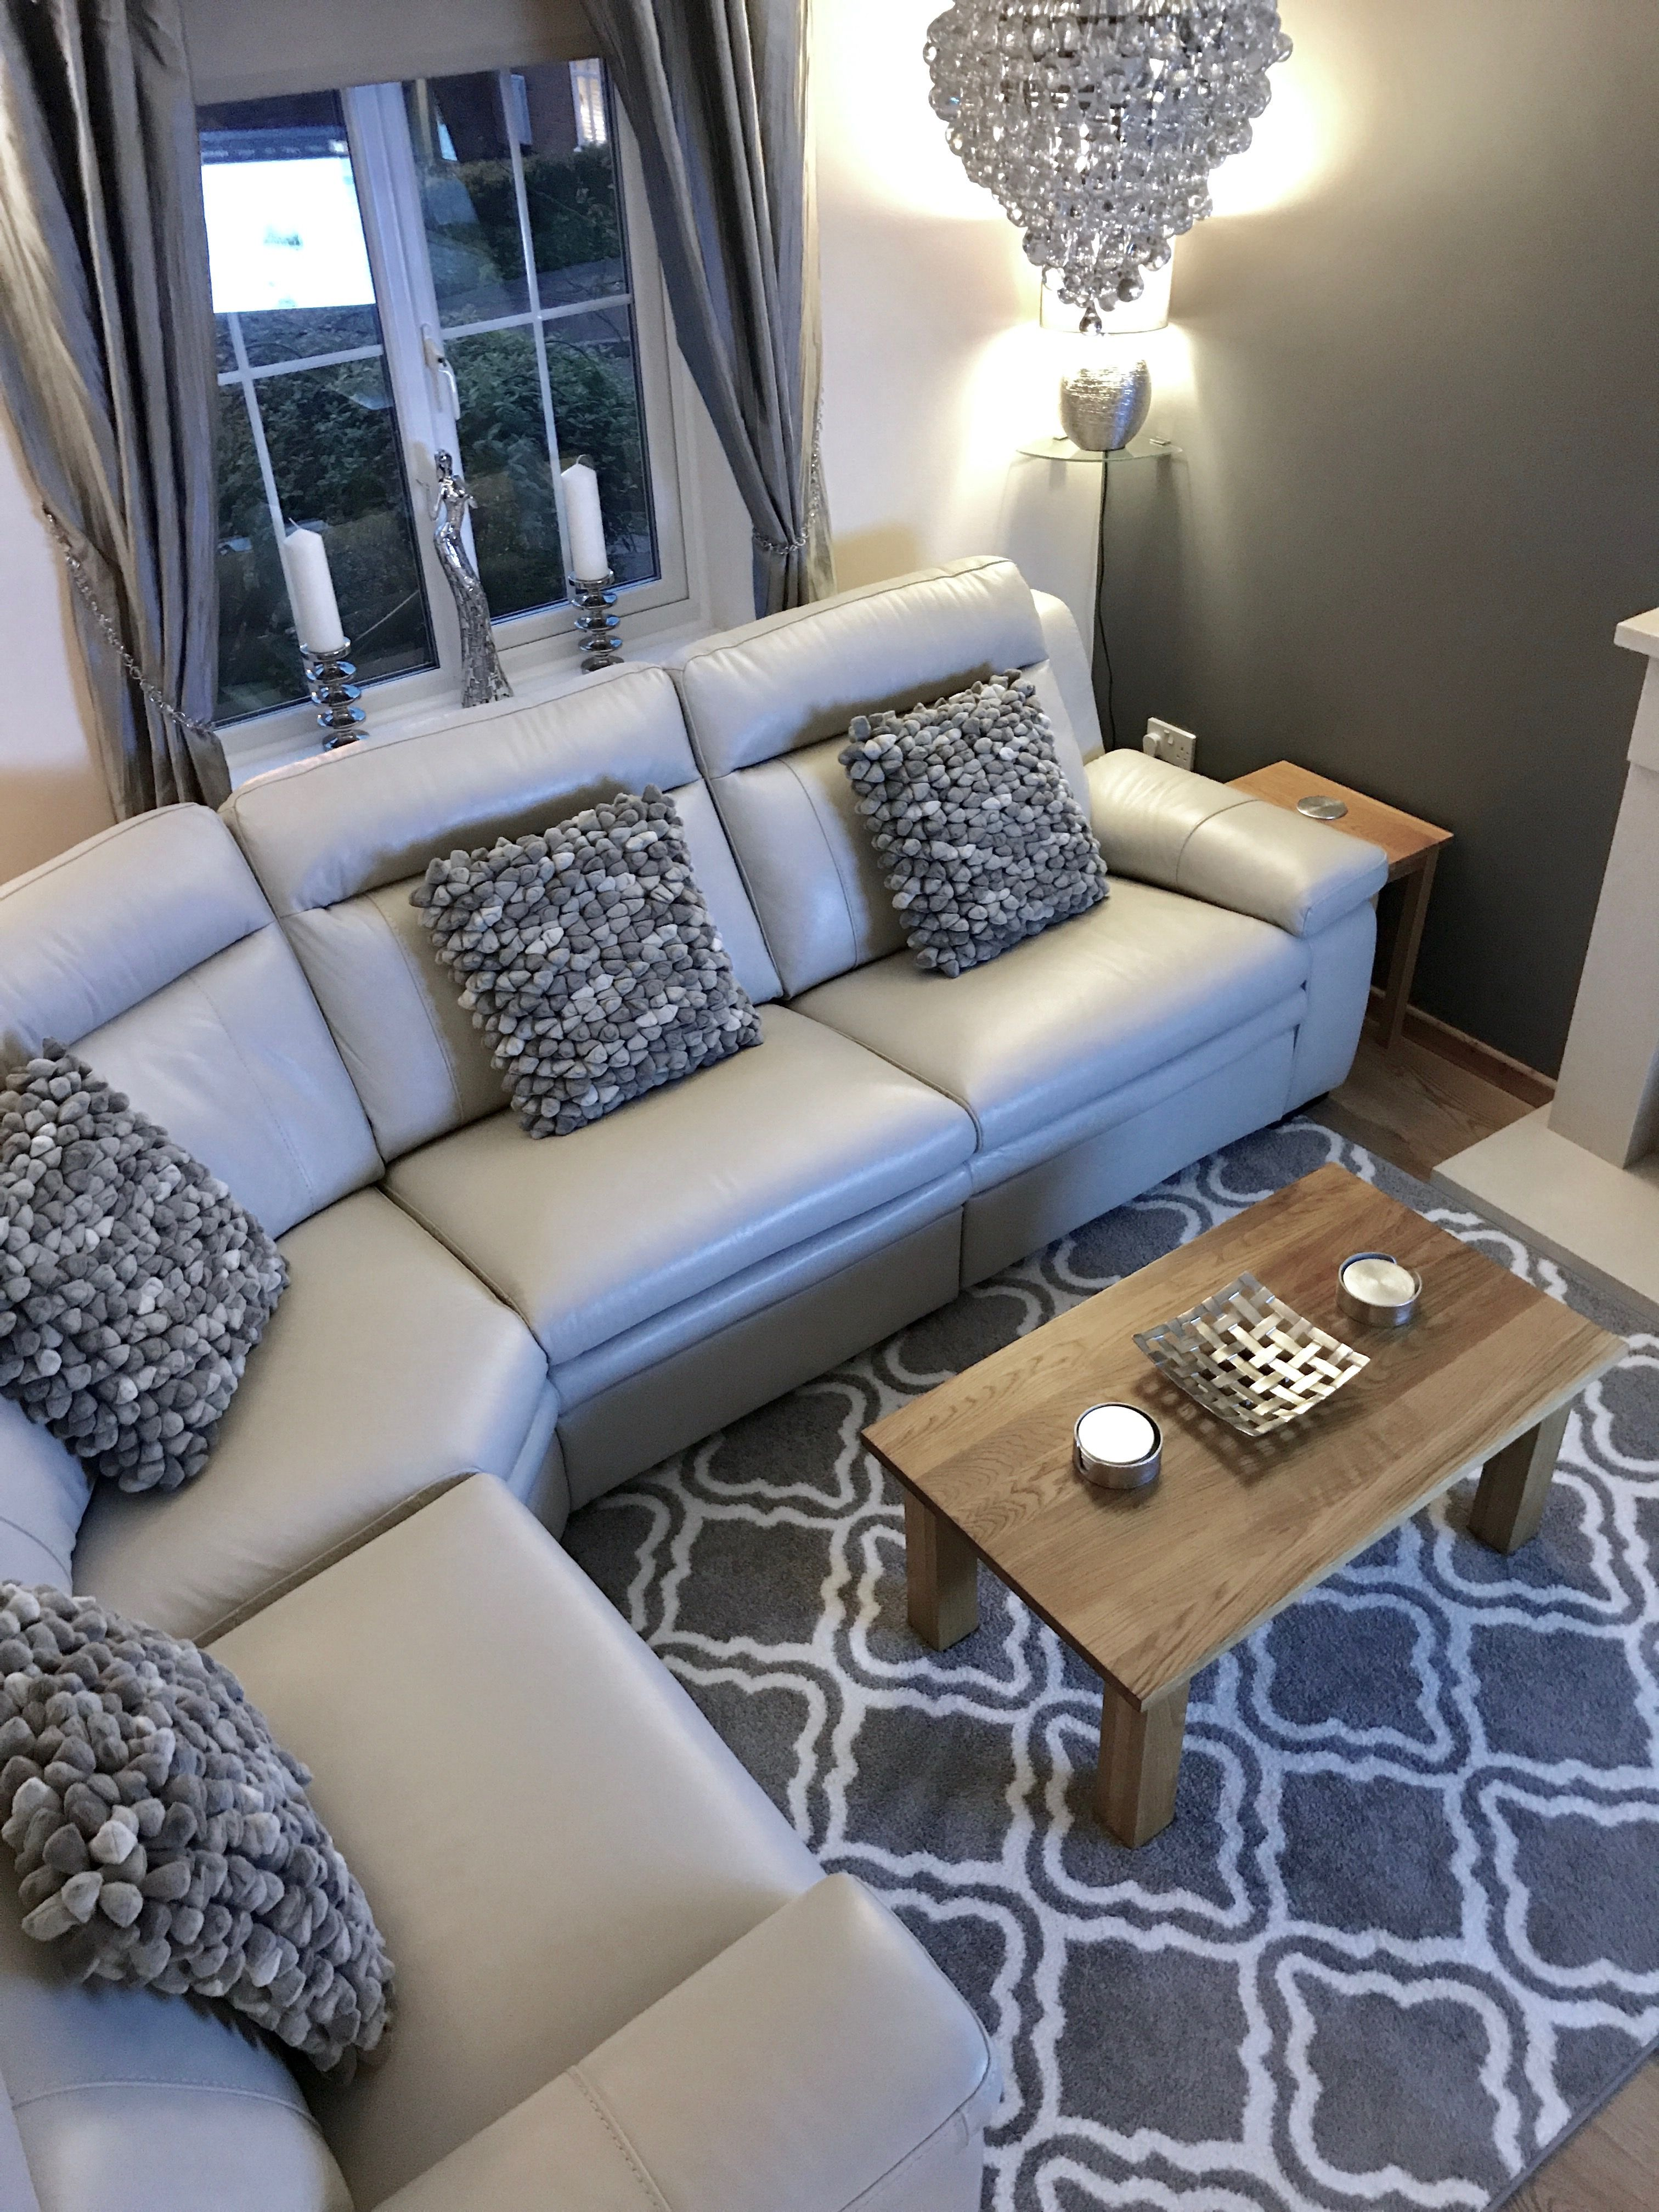 Natuzzi Sofa Harveys Sitting Room Living Room This Is My Sitting Room Grey And Cream